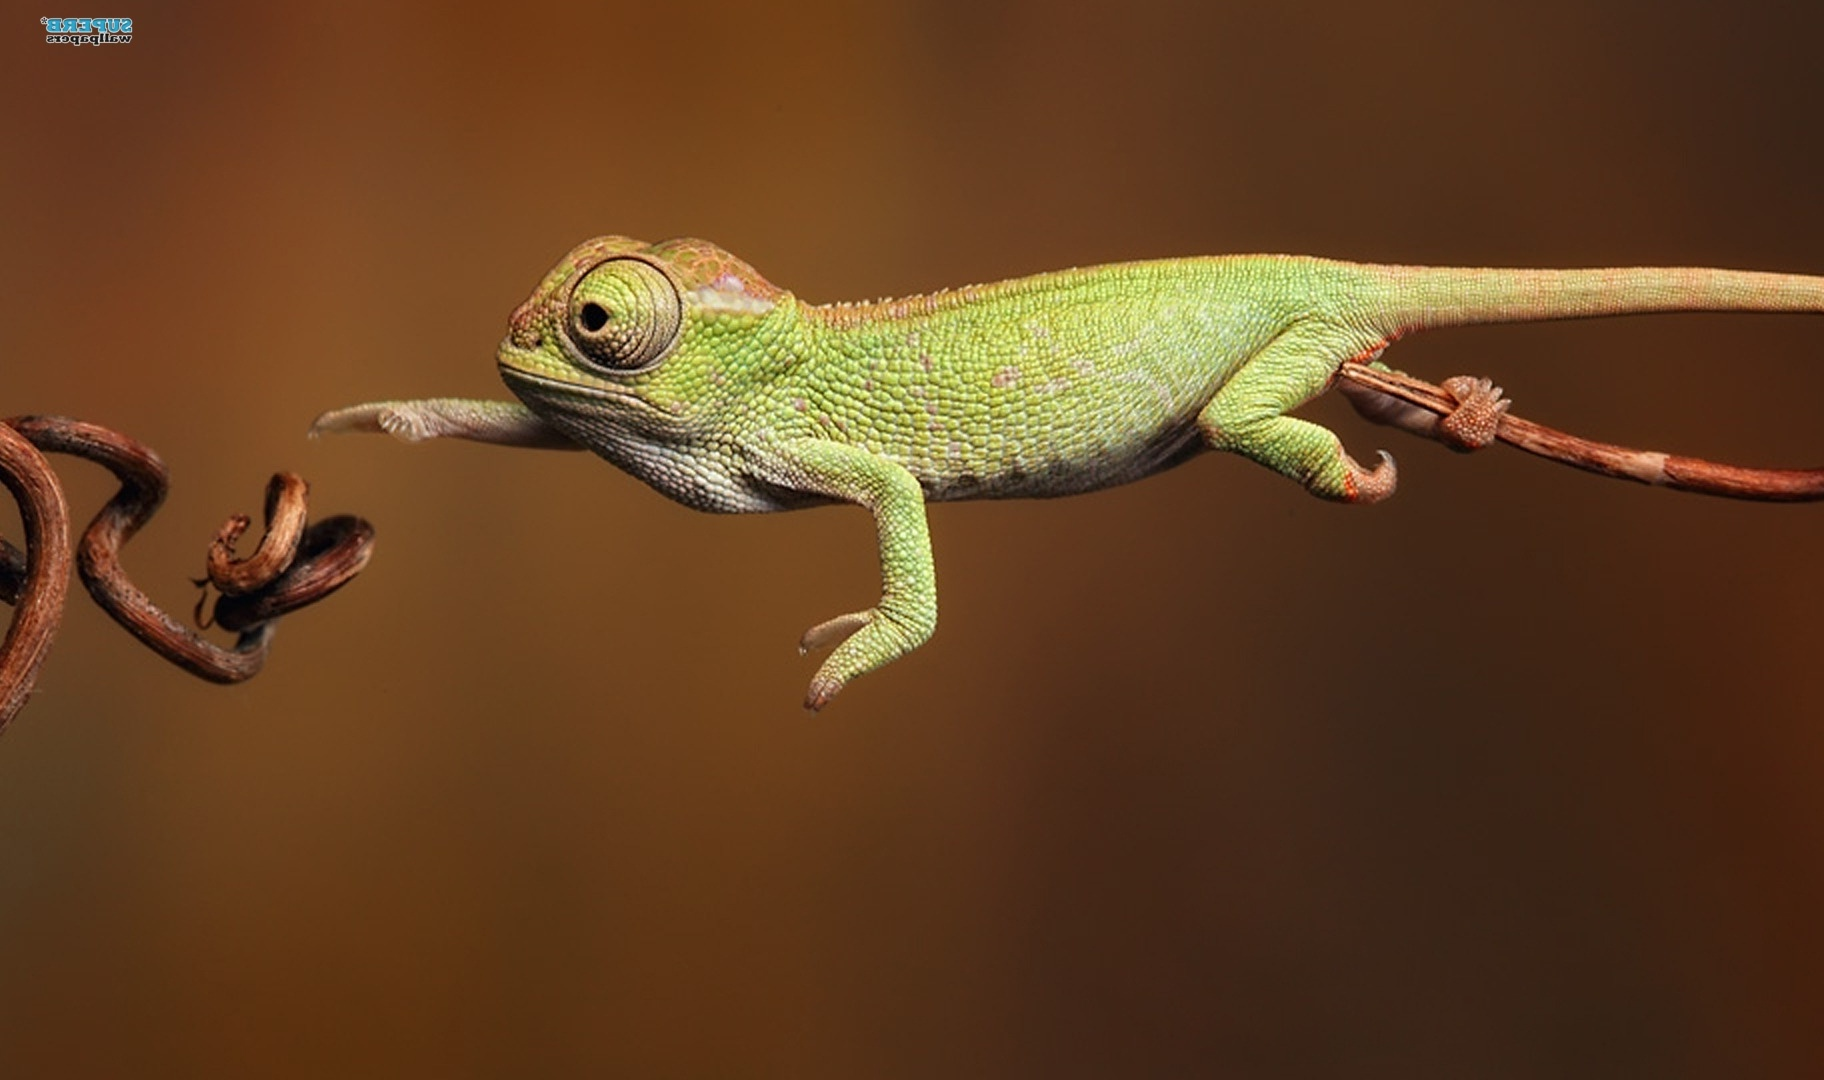 Chameleon wallpaper - Animal wallpapers - #7283